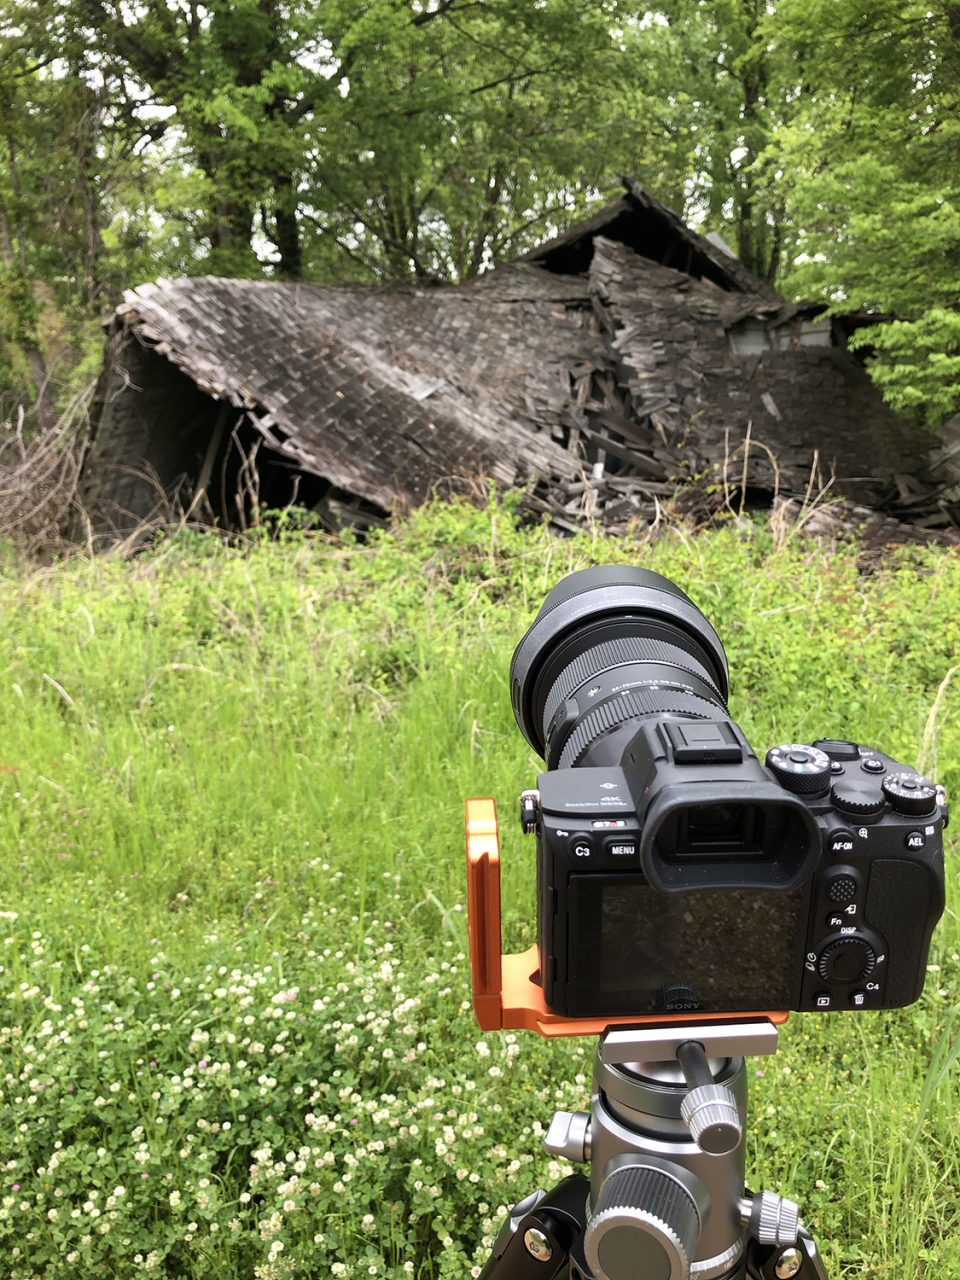 Photographing the partially collapsed old house in Hushpuckena, Mississippi. The peak visible on the left once stood above the post office portion of the house. In the video, we peek inside the old house through a window. Photograph copyright 2021 by Keith Dotson. All rights reserved.